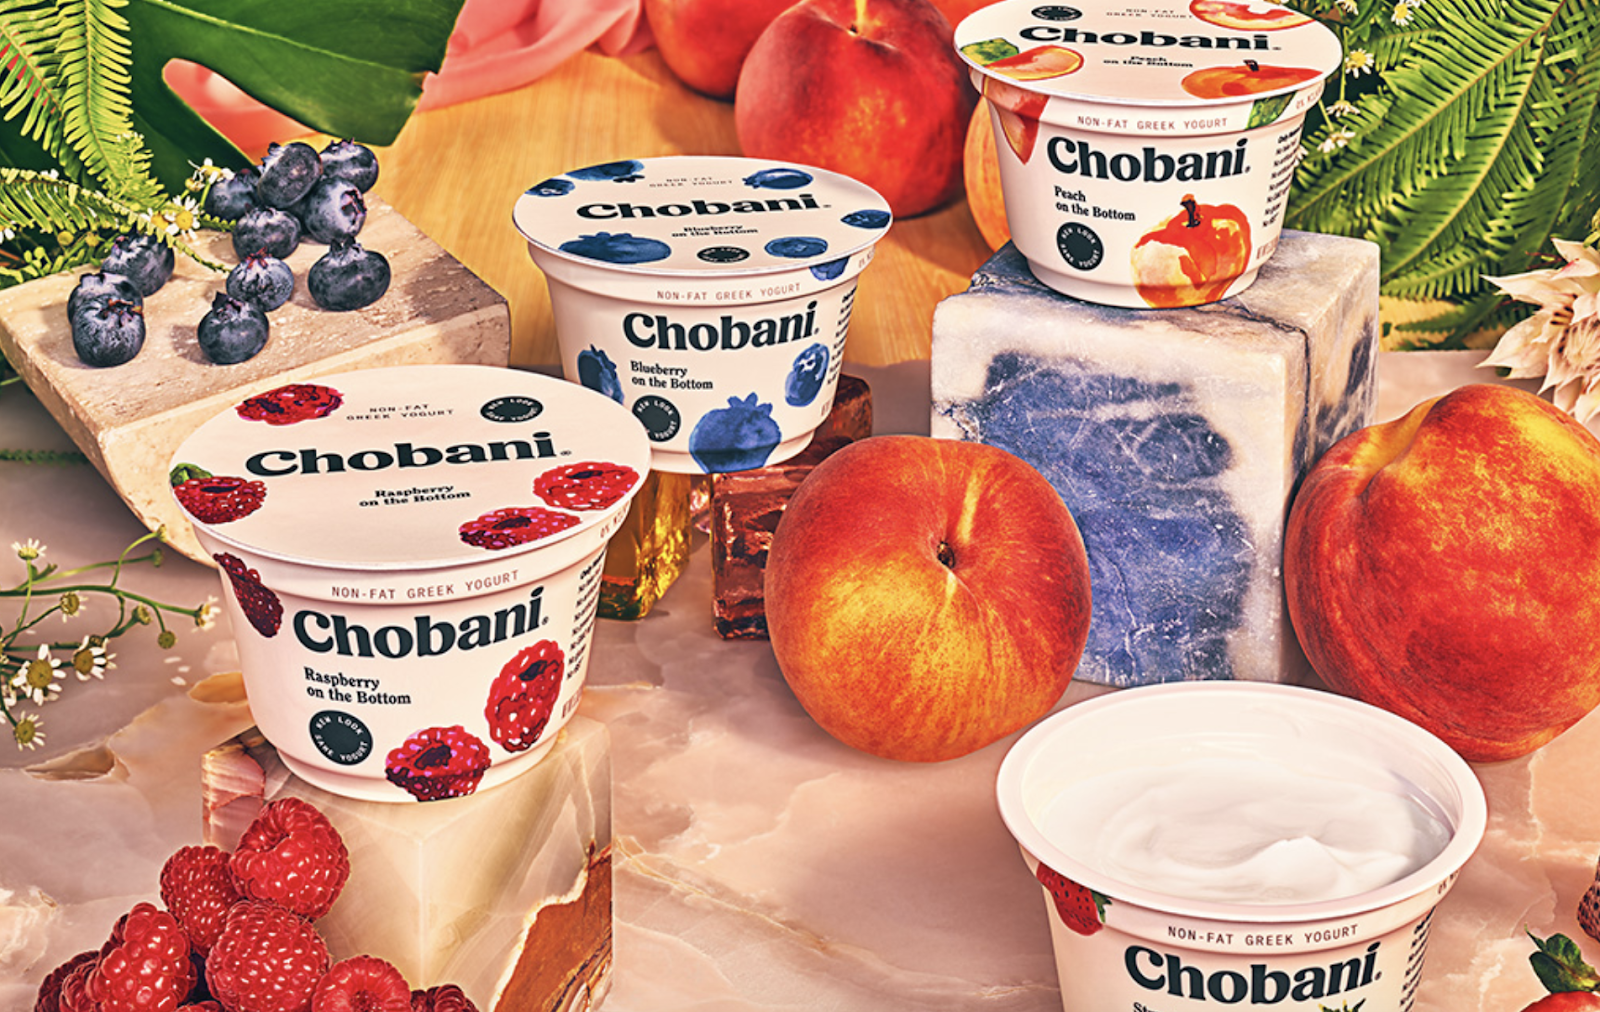 chobani-redesign-package